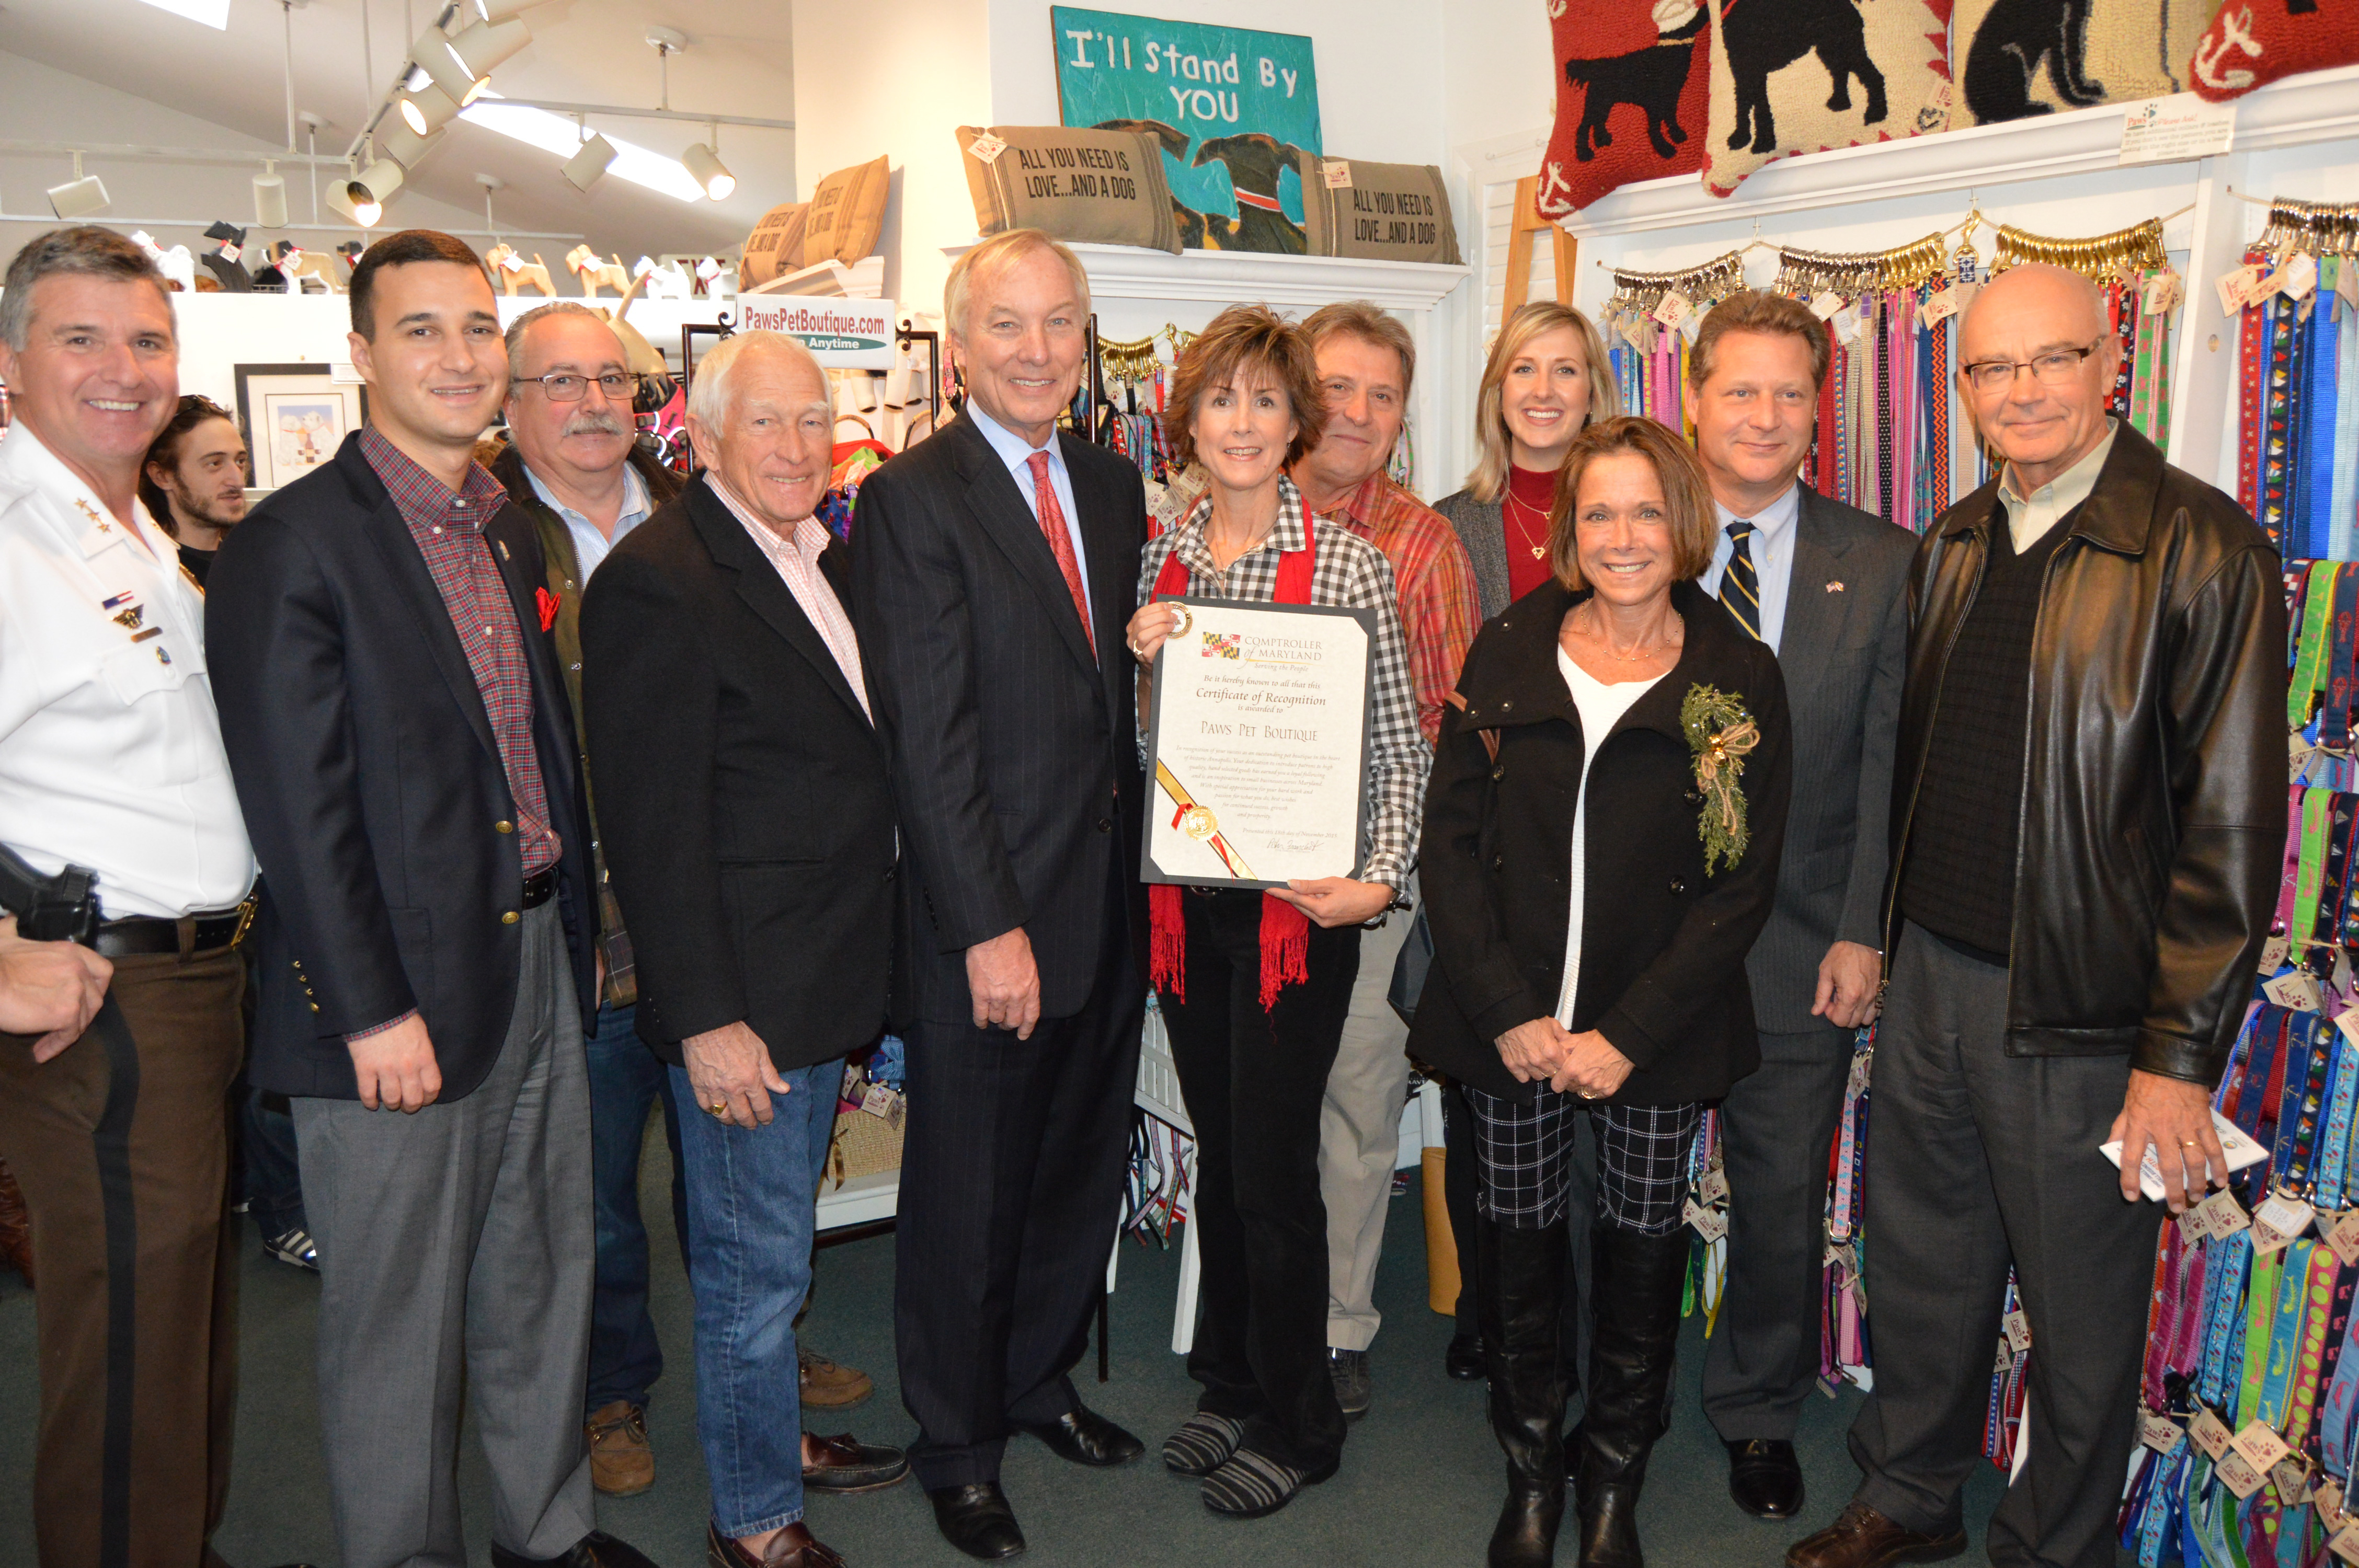 Maryland Comptroller Peter Franchot presents Paws with Proclamation.